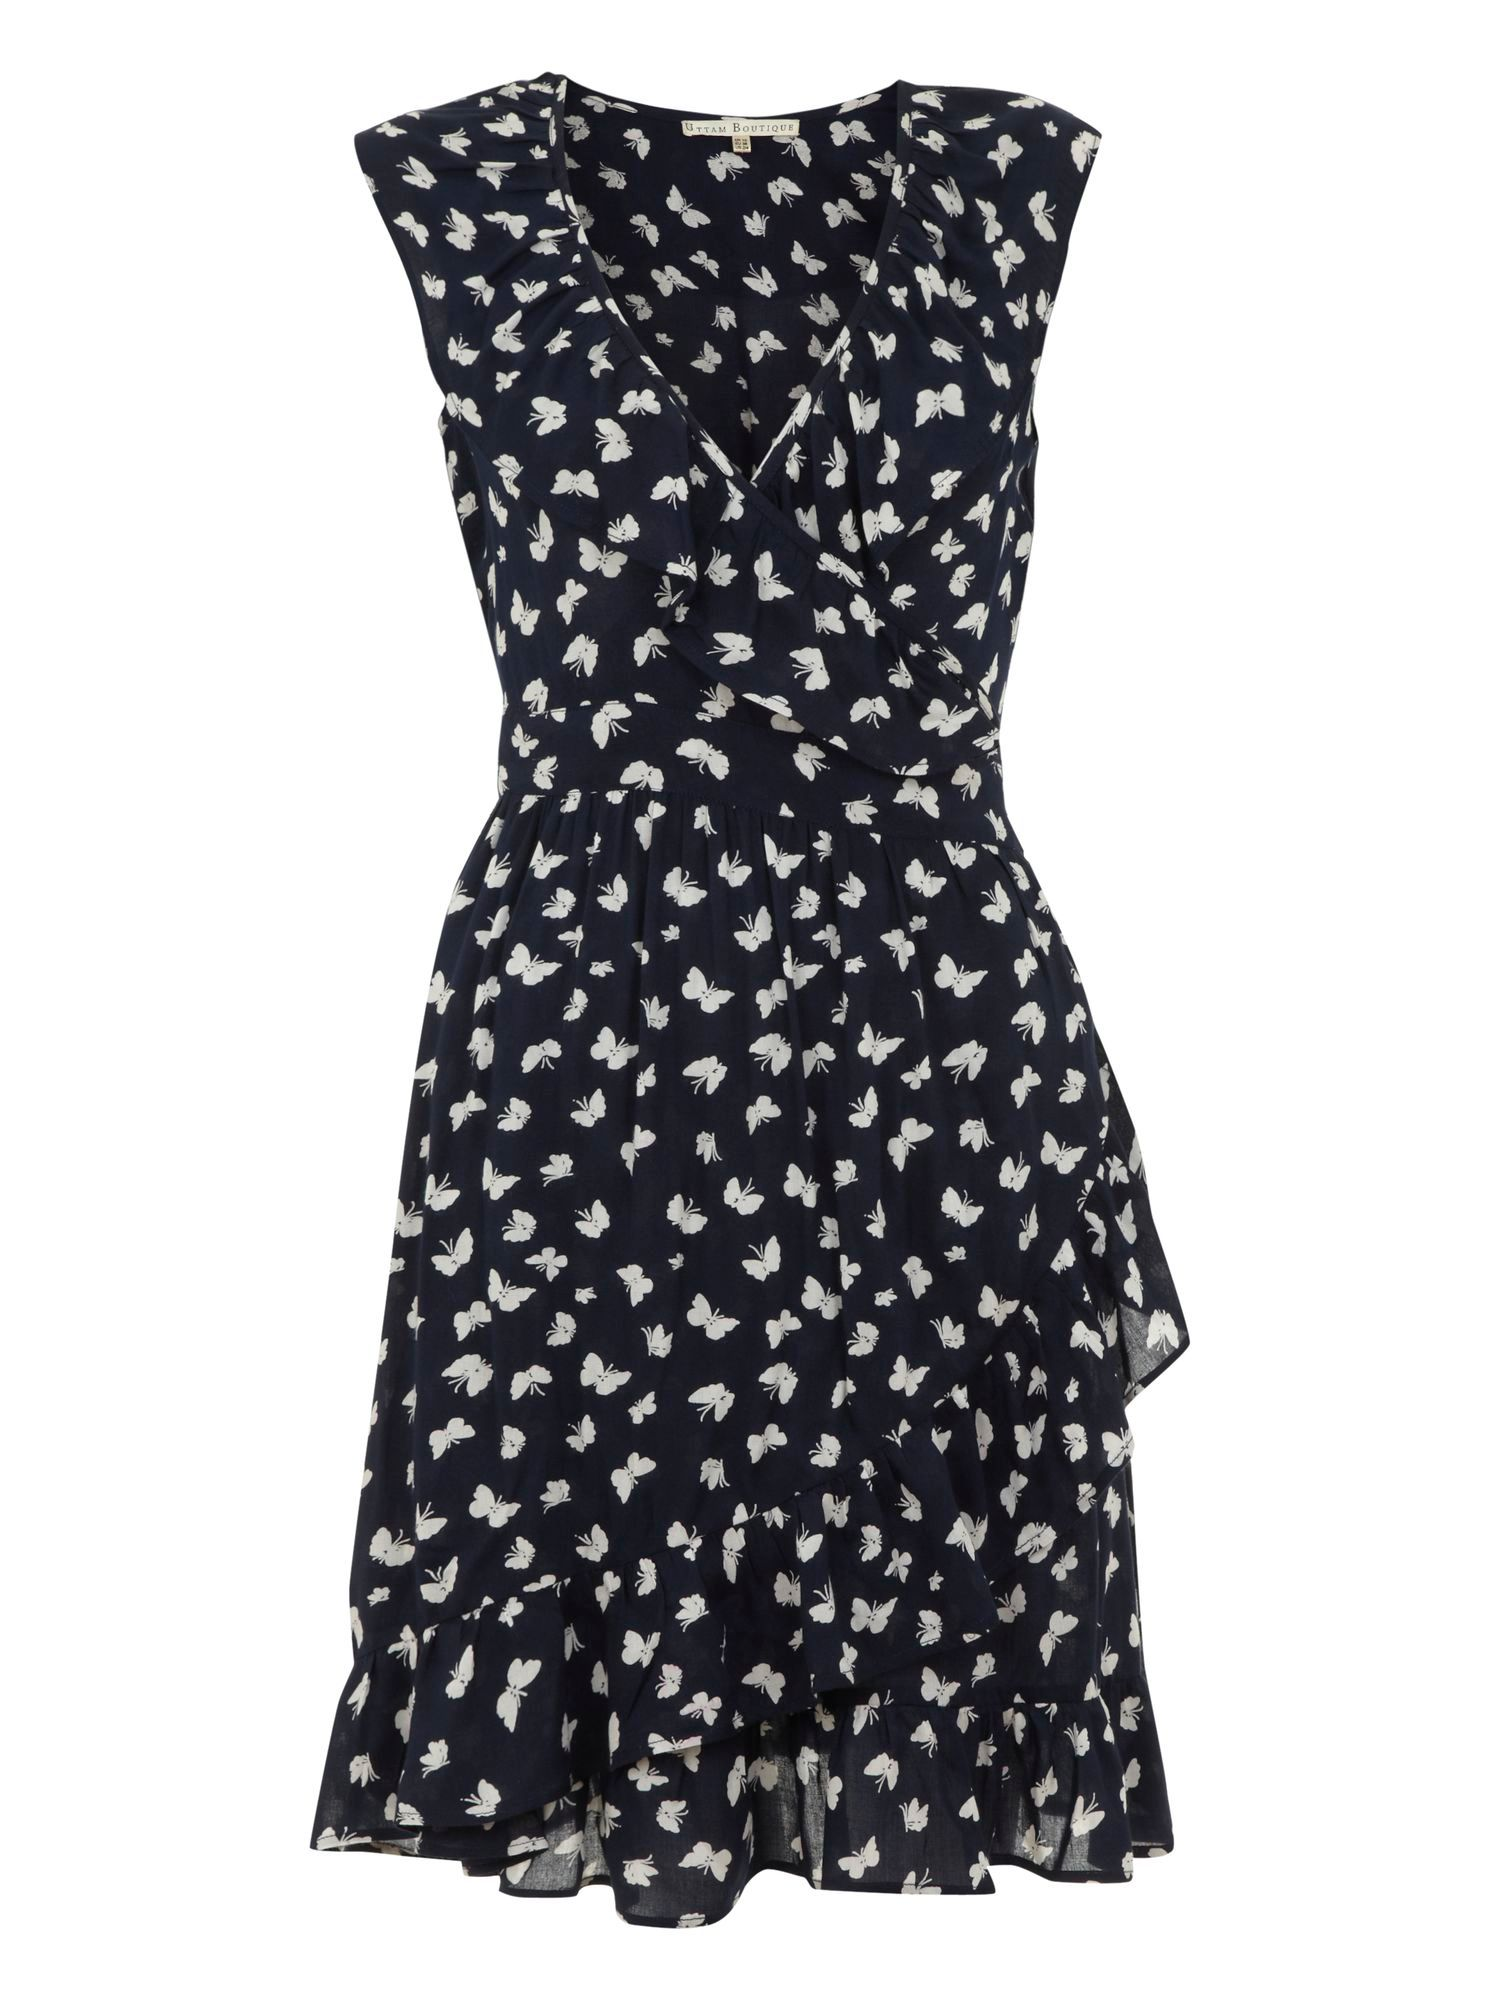 Butterfly frilly wrap dress